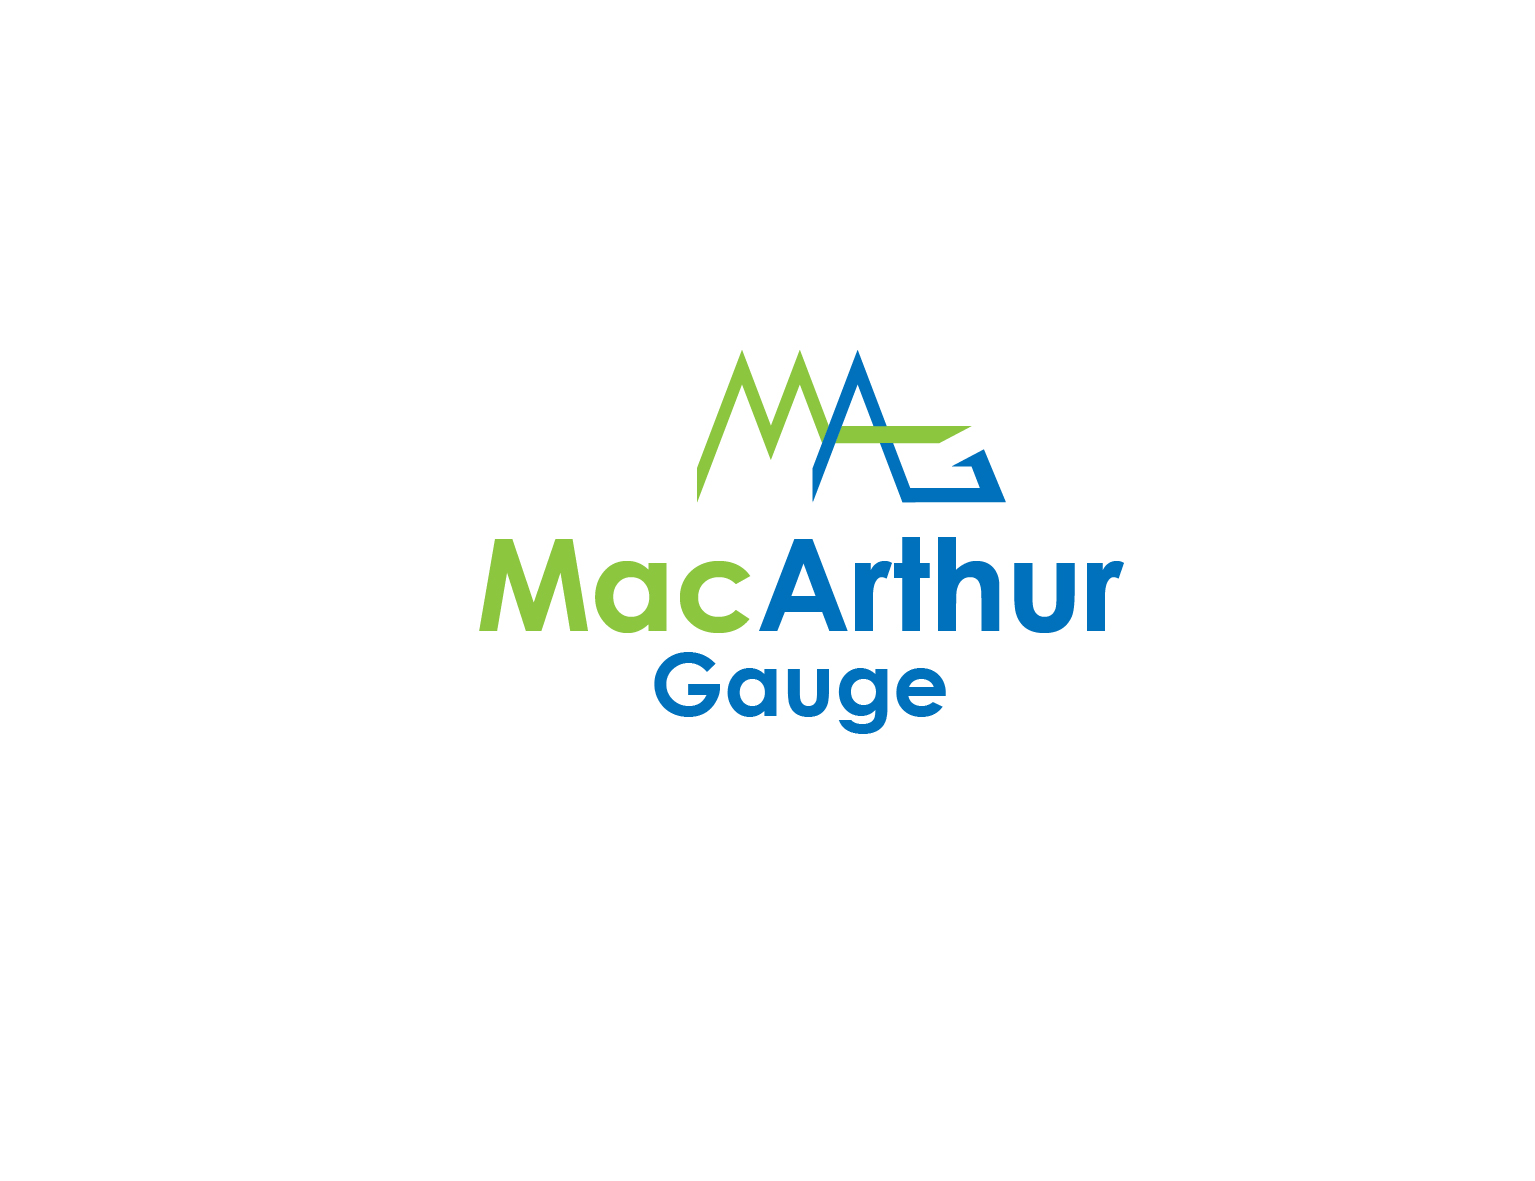 Logo Design by 3draw - Entry No. 184 in the Logo Design Contest Fun Logo Design for MacArthur Gauge.